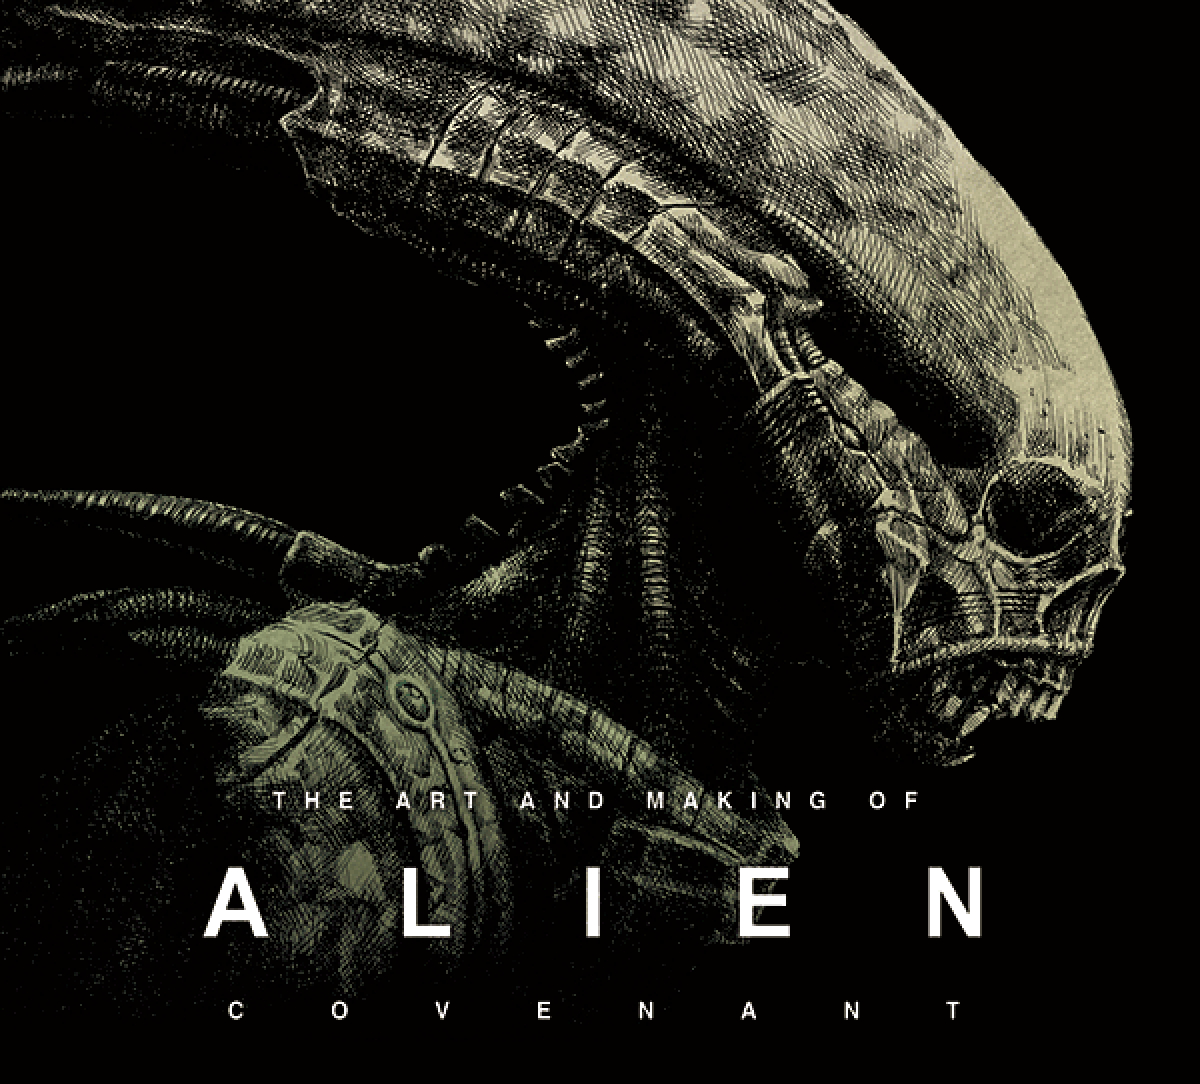 The Art and Making of Alien: Covenant Art Book